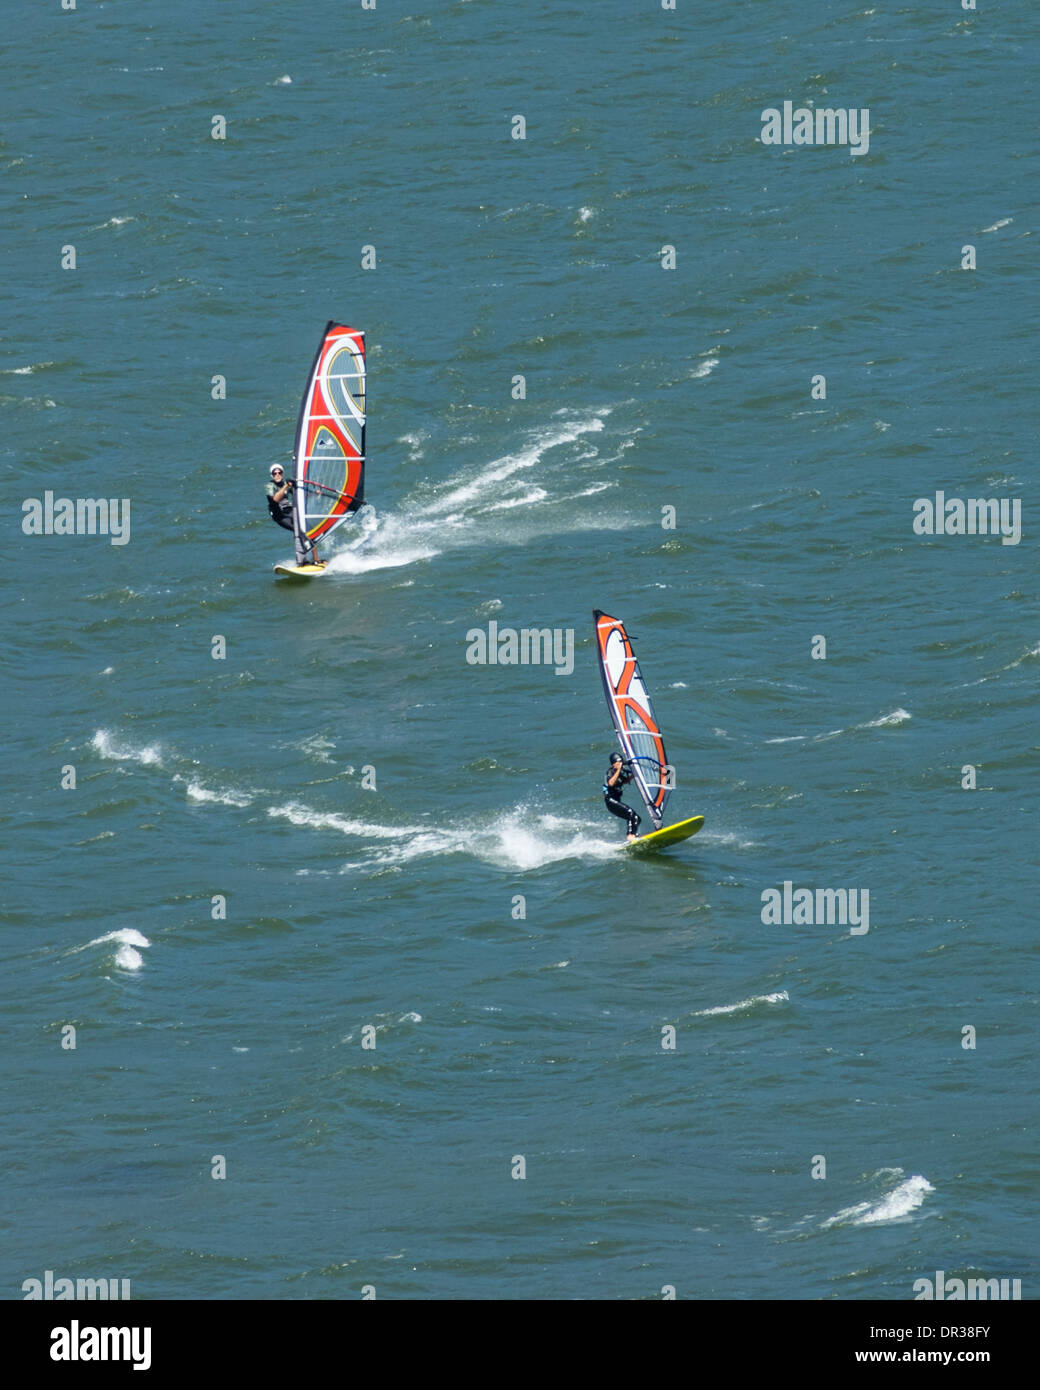 Windsurfers enjoying a brisk windy day on the Columbia River.  Columbia River Scenic Area, Oregon - Stock Image